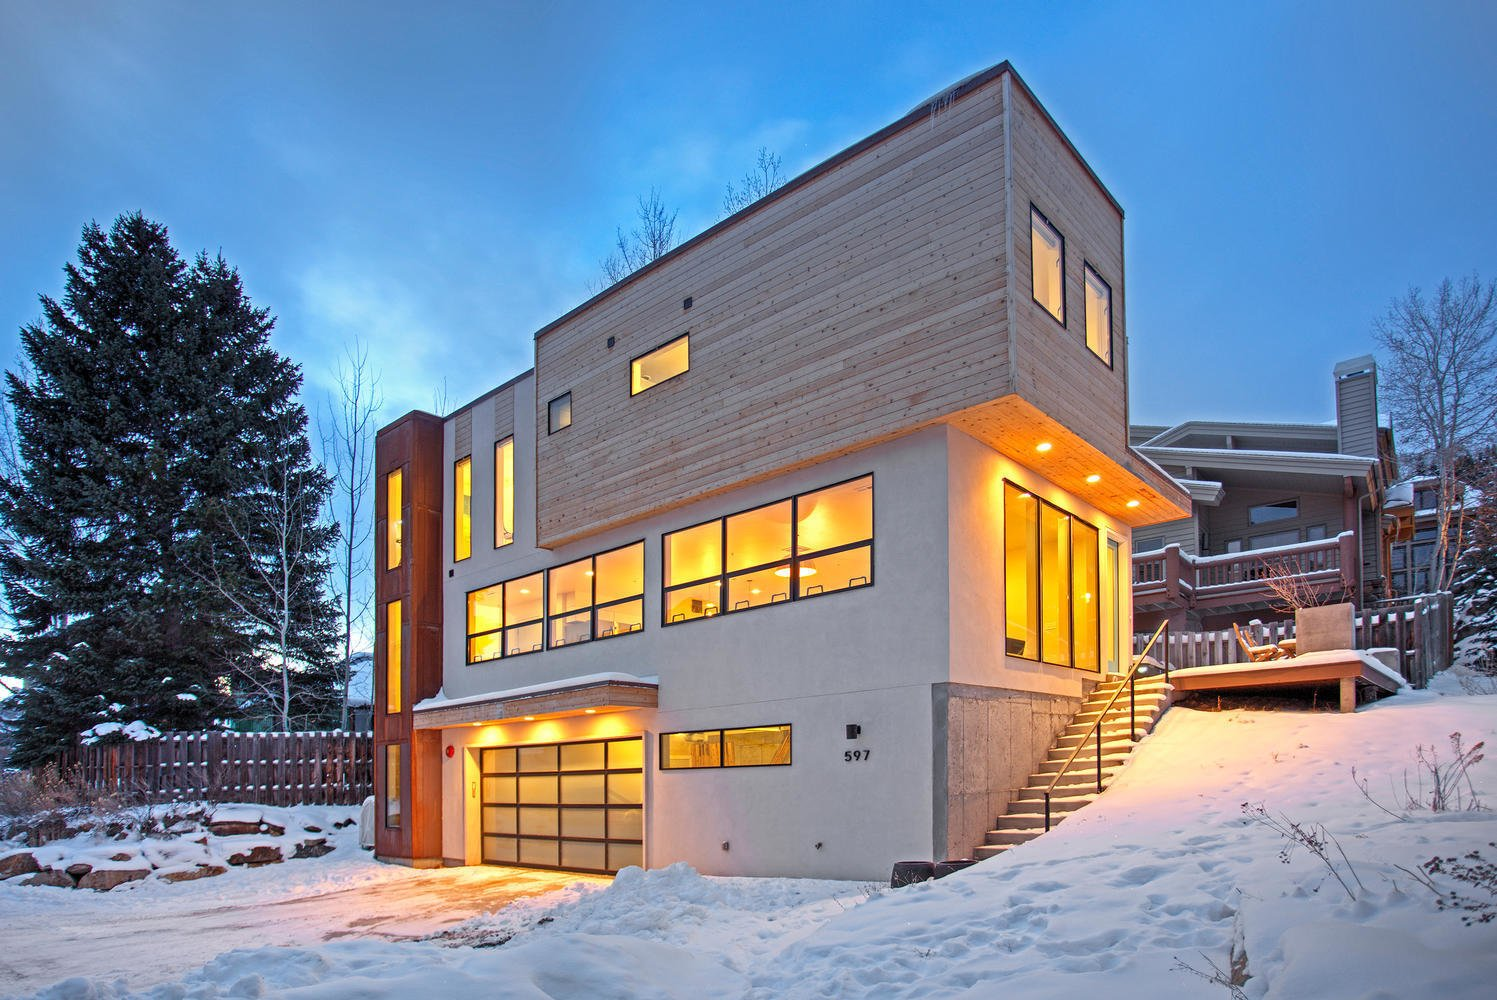 Photo 1 of 9 in Be at Home With Park City's Slopes For $1.6M